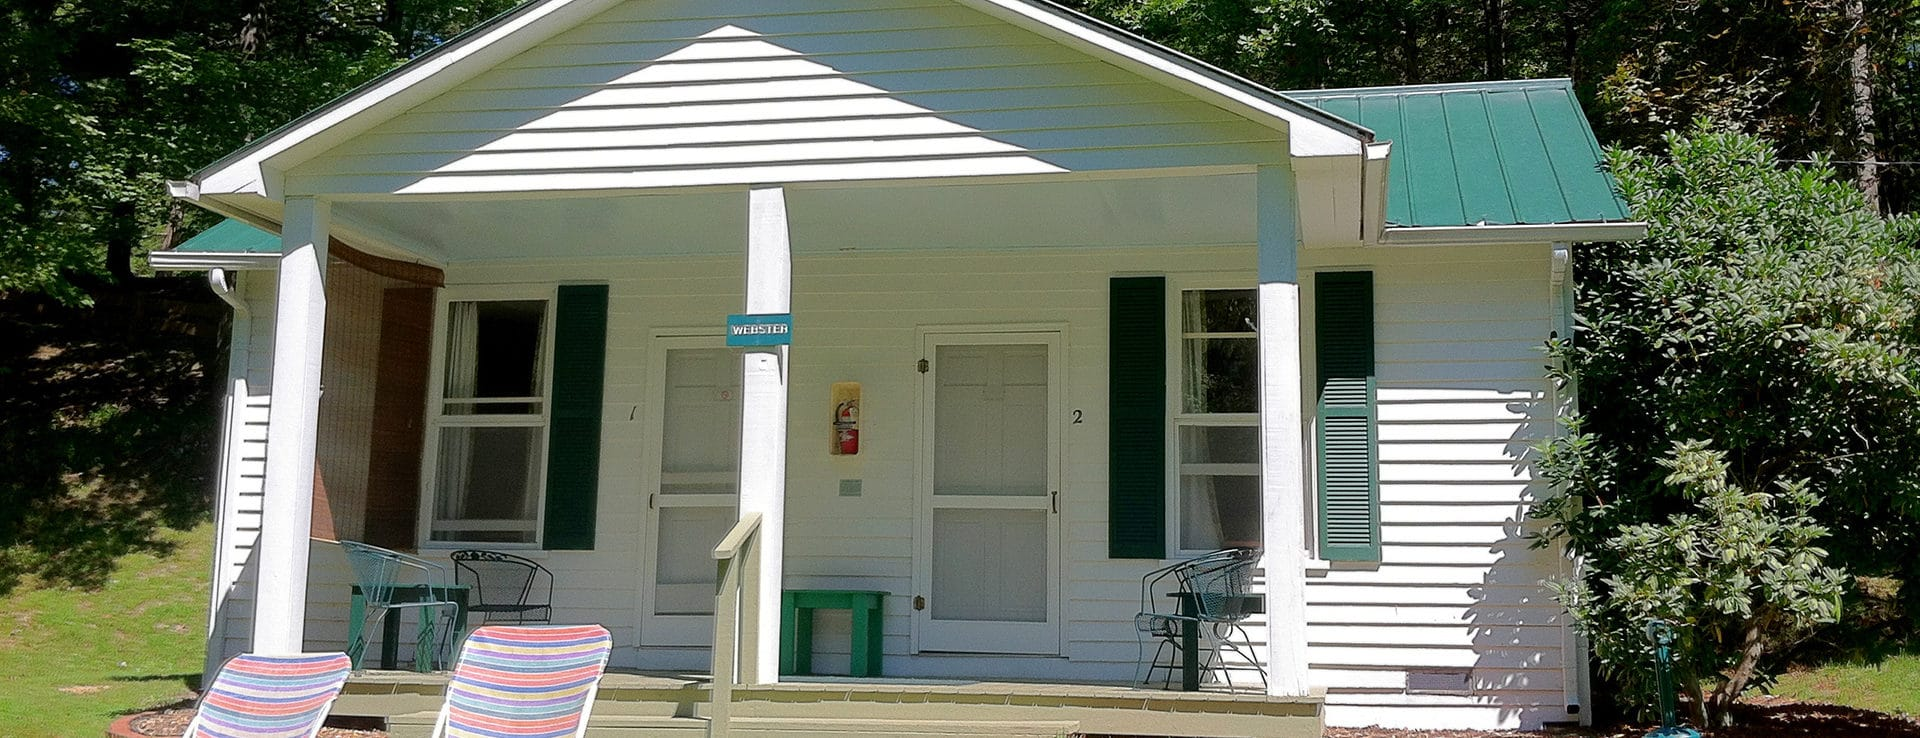 The Webster Cottage at Capon Springs